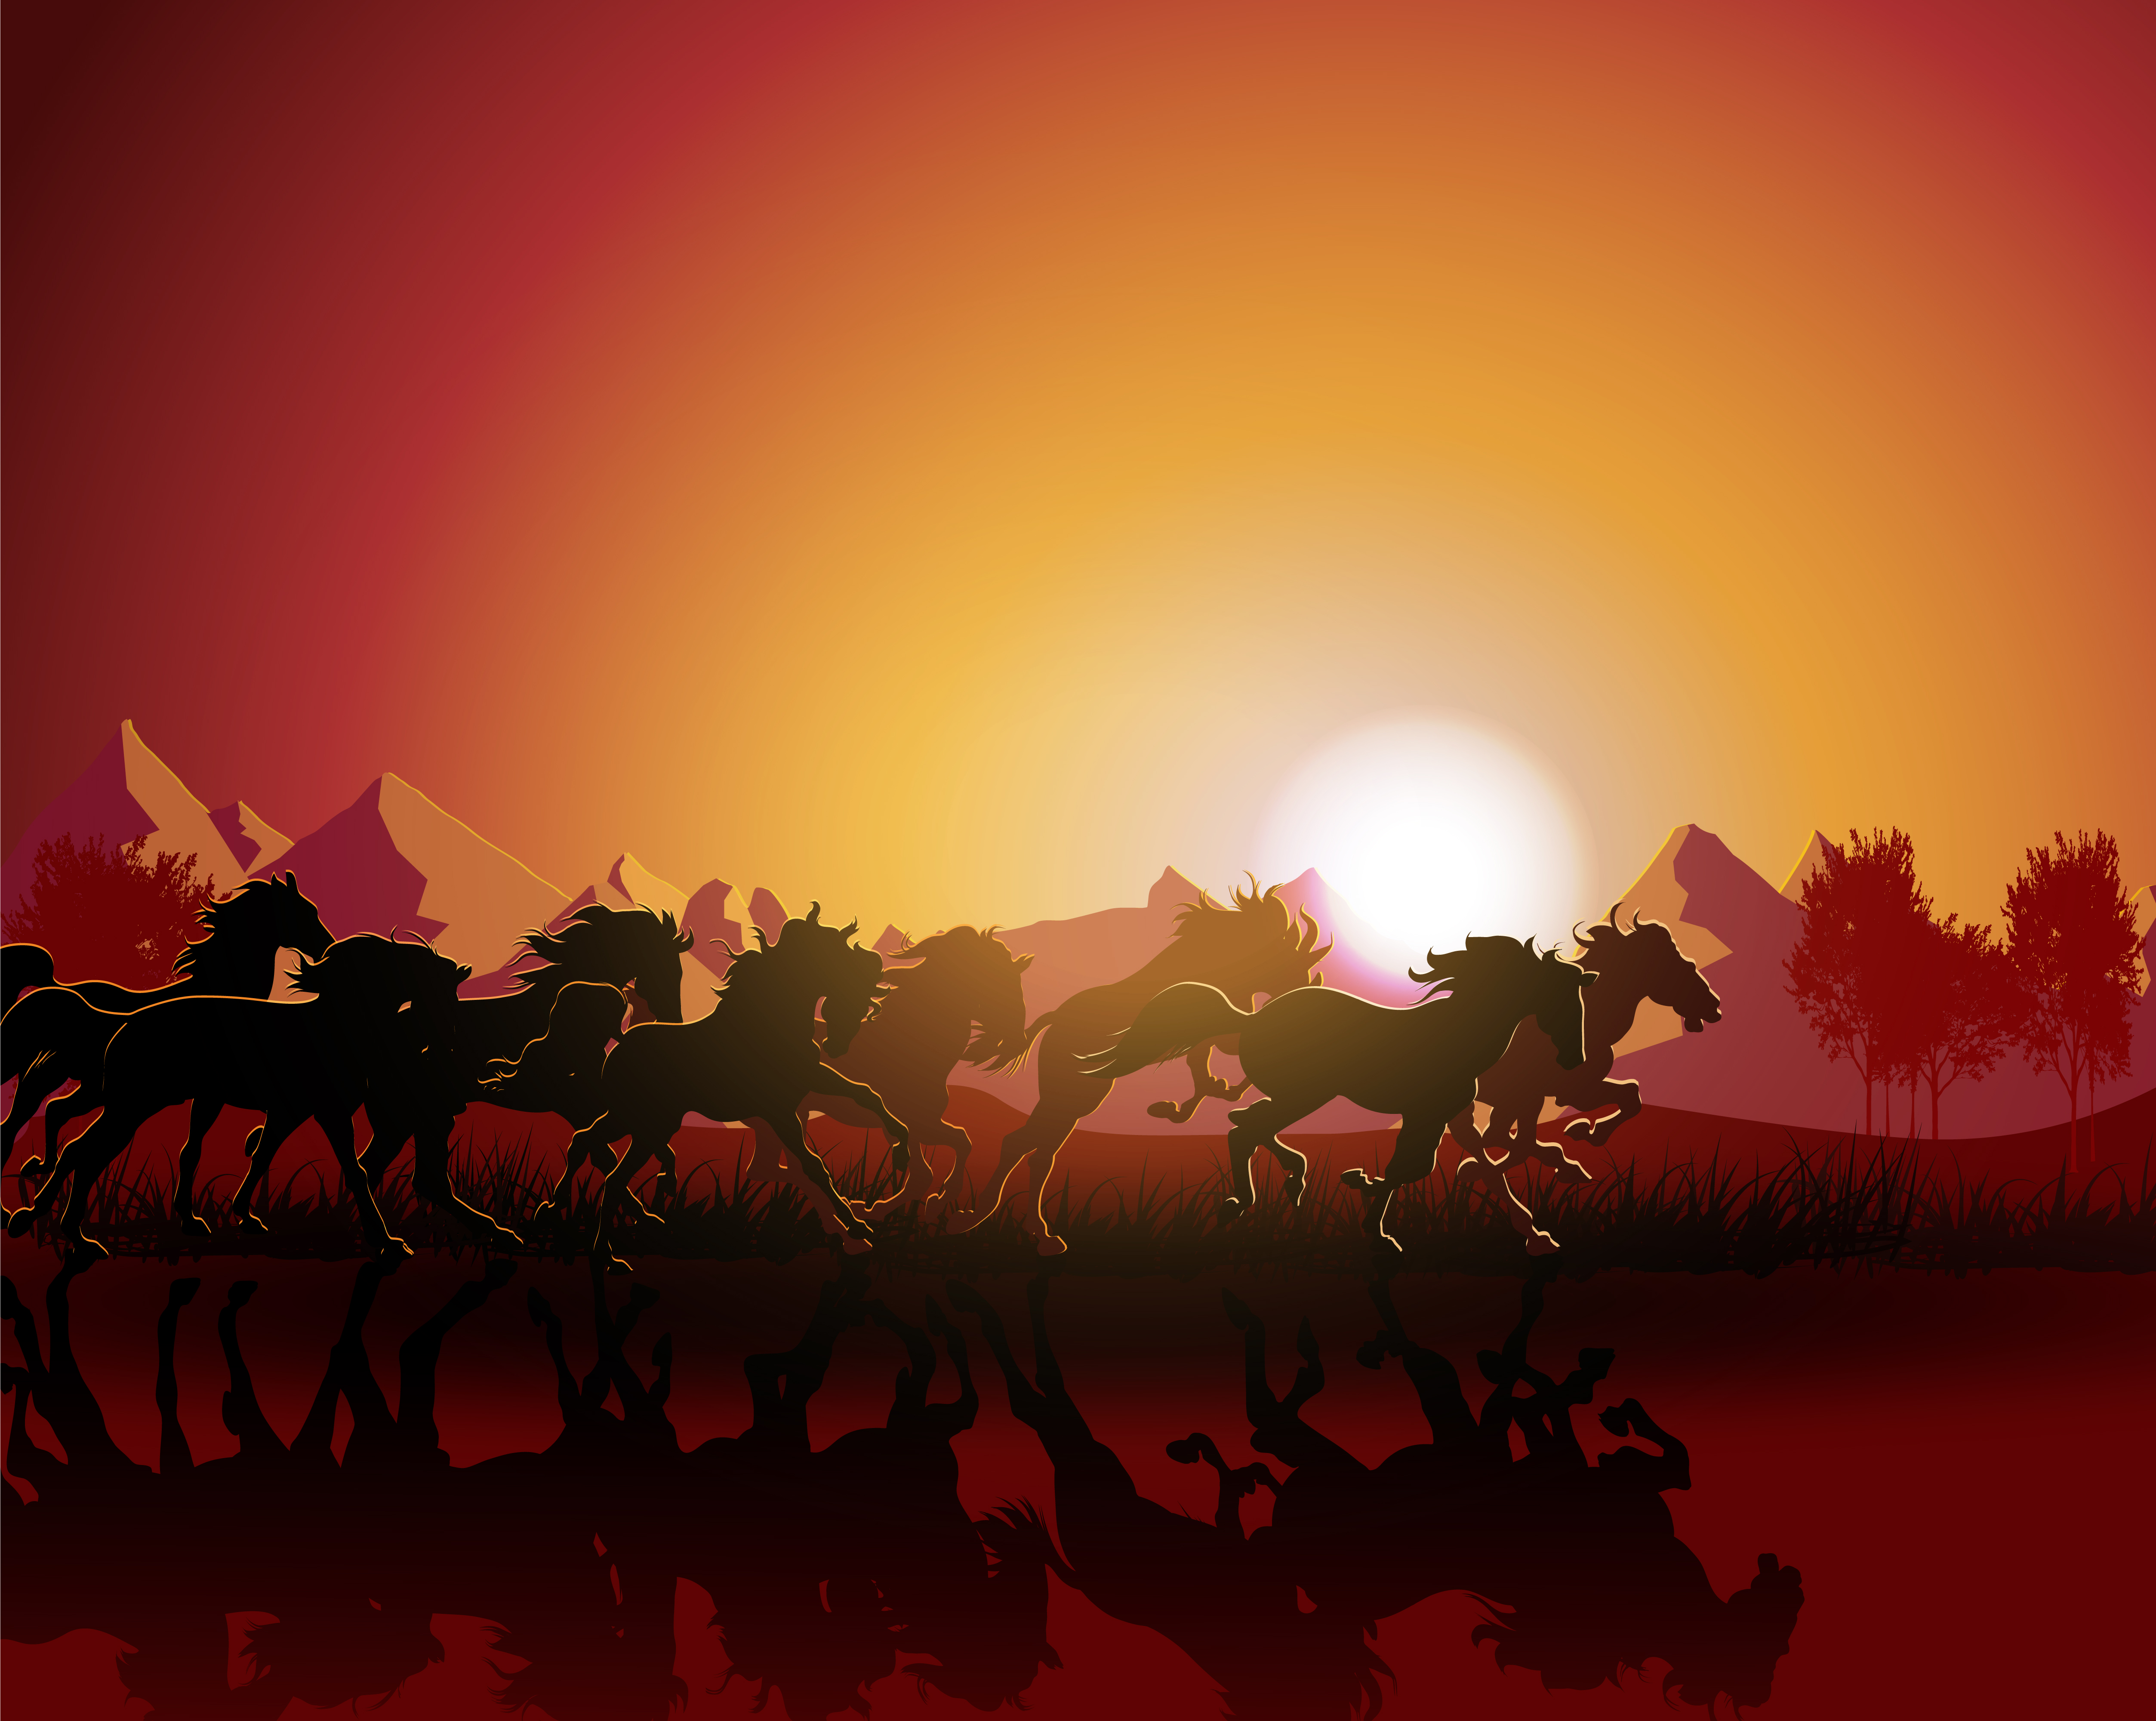 Horse Silhouette On Sunset Background Download Free Vectors Clipart Graphics Vector Art